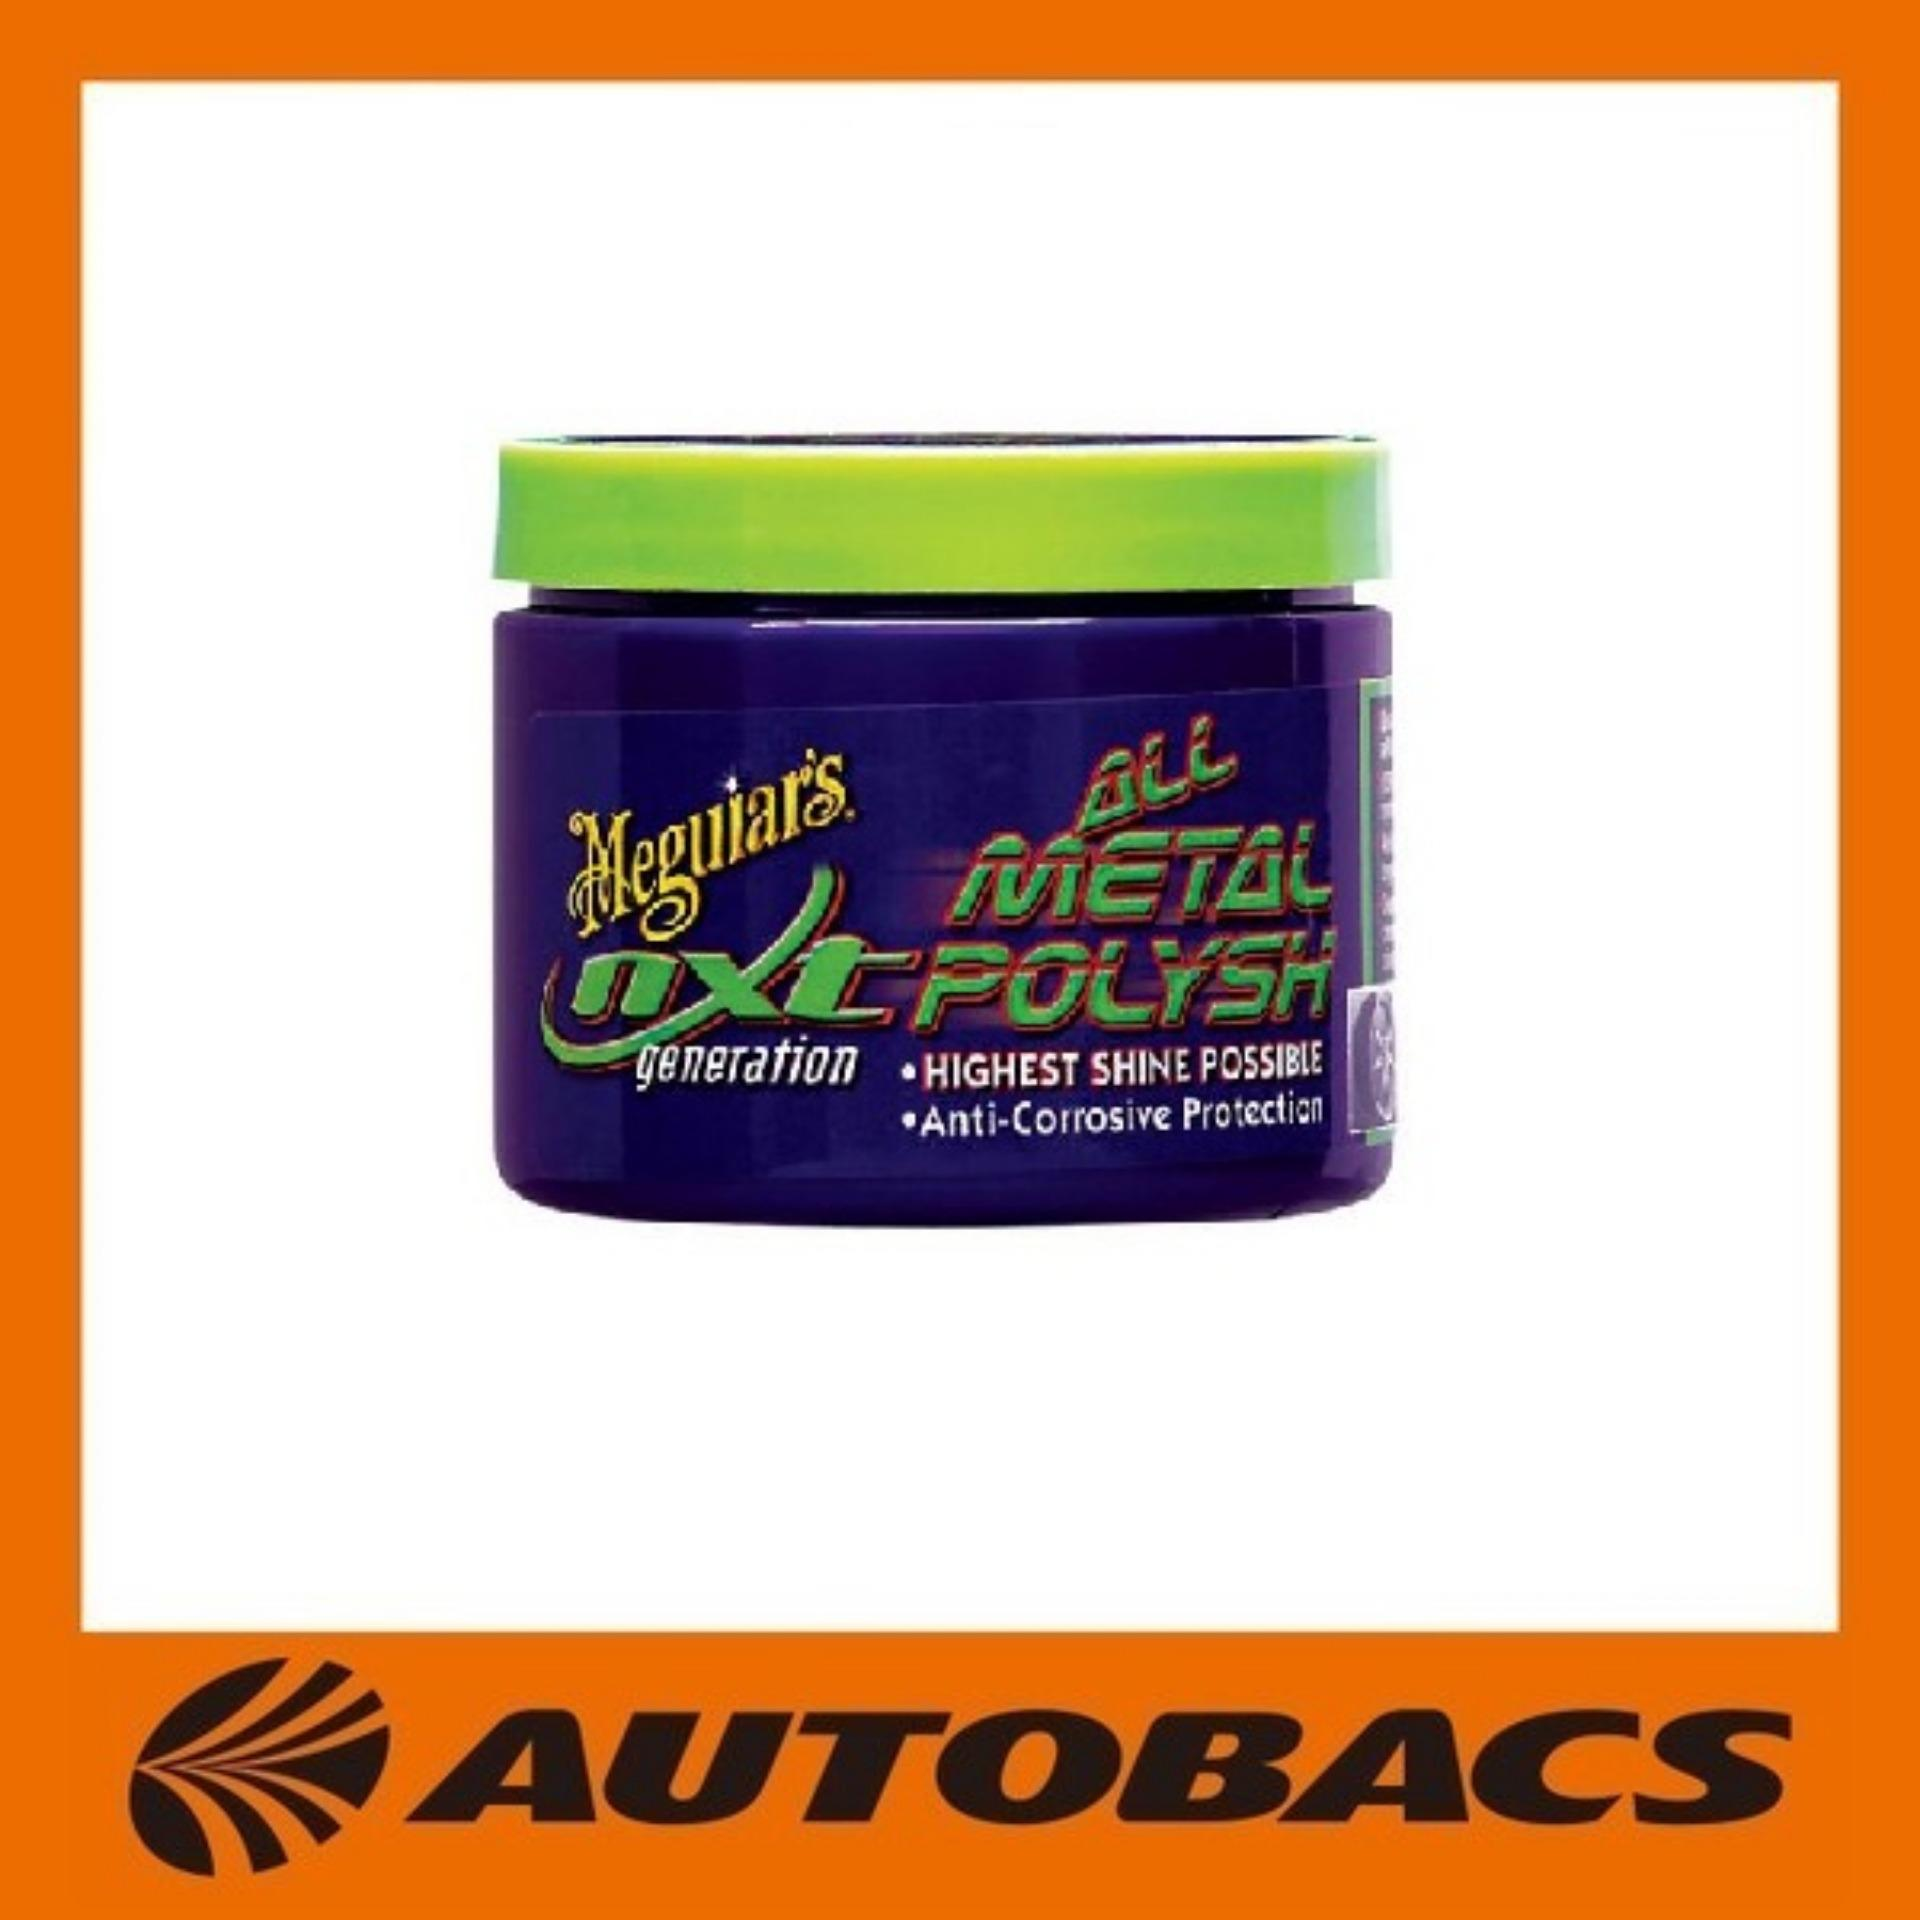 Who Sells The Cheapest Meguiar S Nxt All Metal Polish 5Oz Online